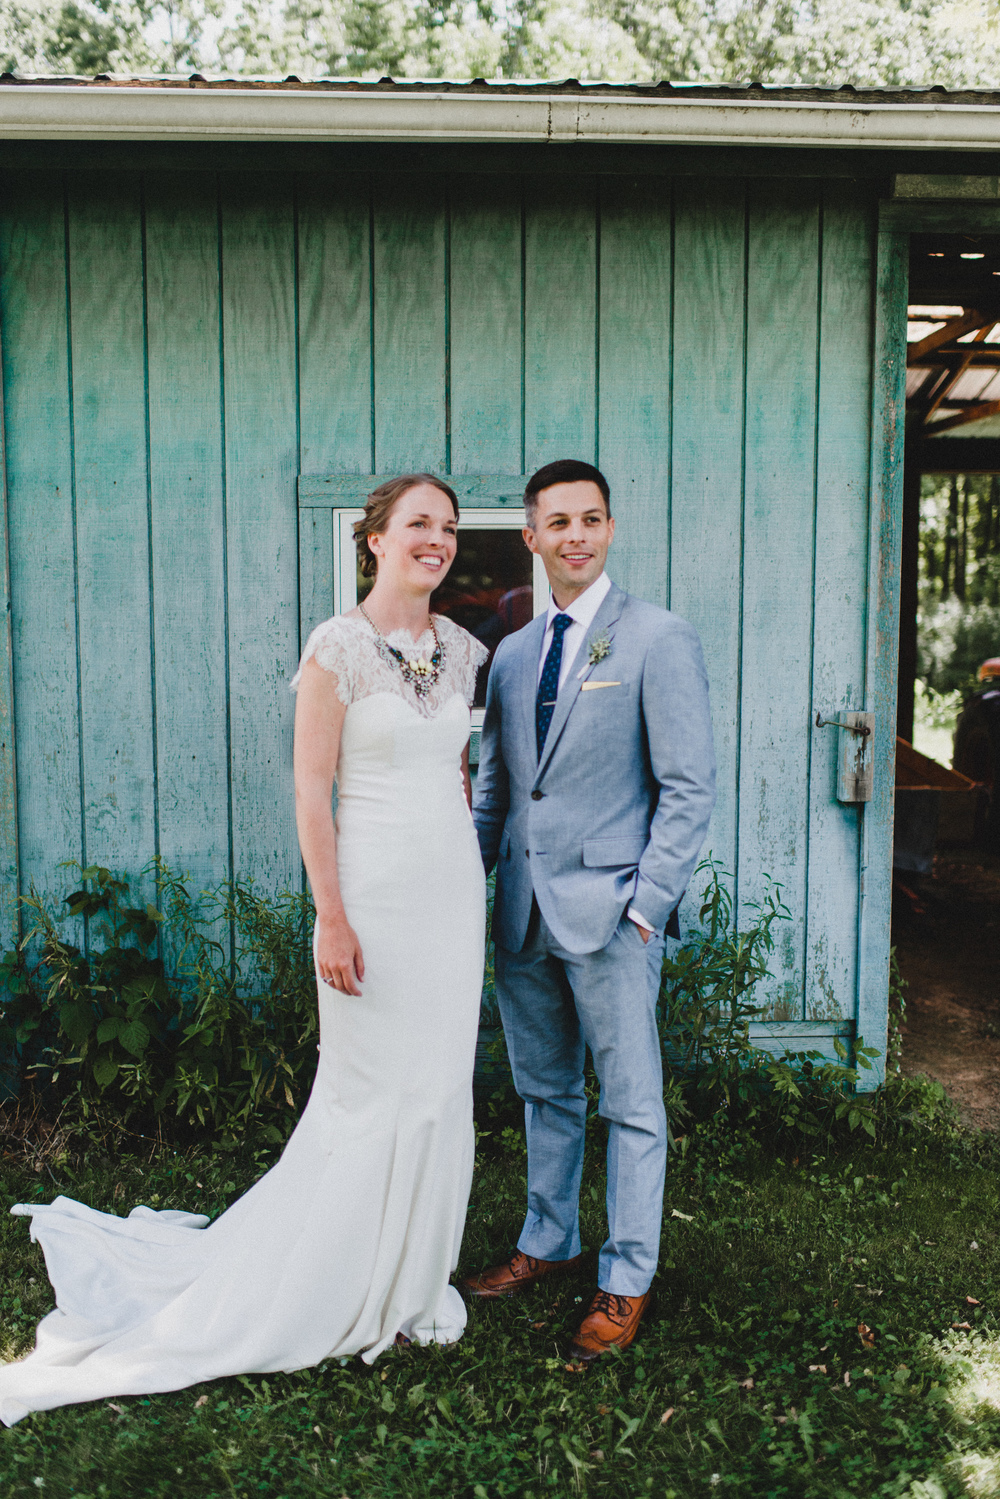 Intimate-Backyard-Farmhouse-Ohio-Wedding-Andi+Ben_Mallory+Justin-Photographers-69.JPG